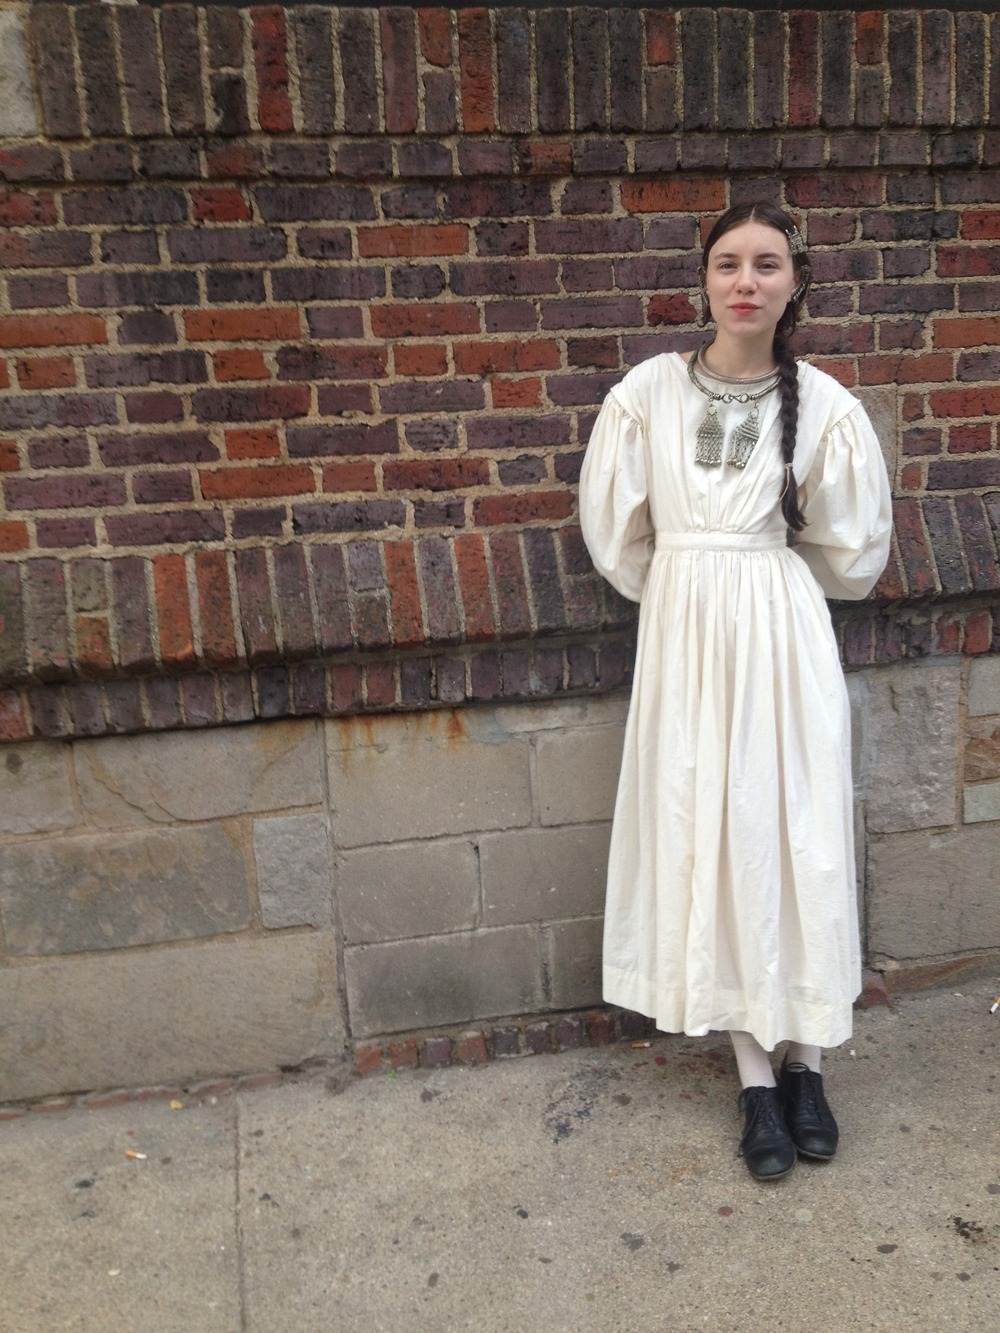 This is the third dress I've made from my favorite pattern- based on an extant American dress from the 1830s. For the others I used cotton calicos but I chose unbleached muslin for this version.